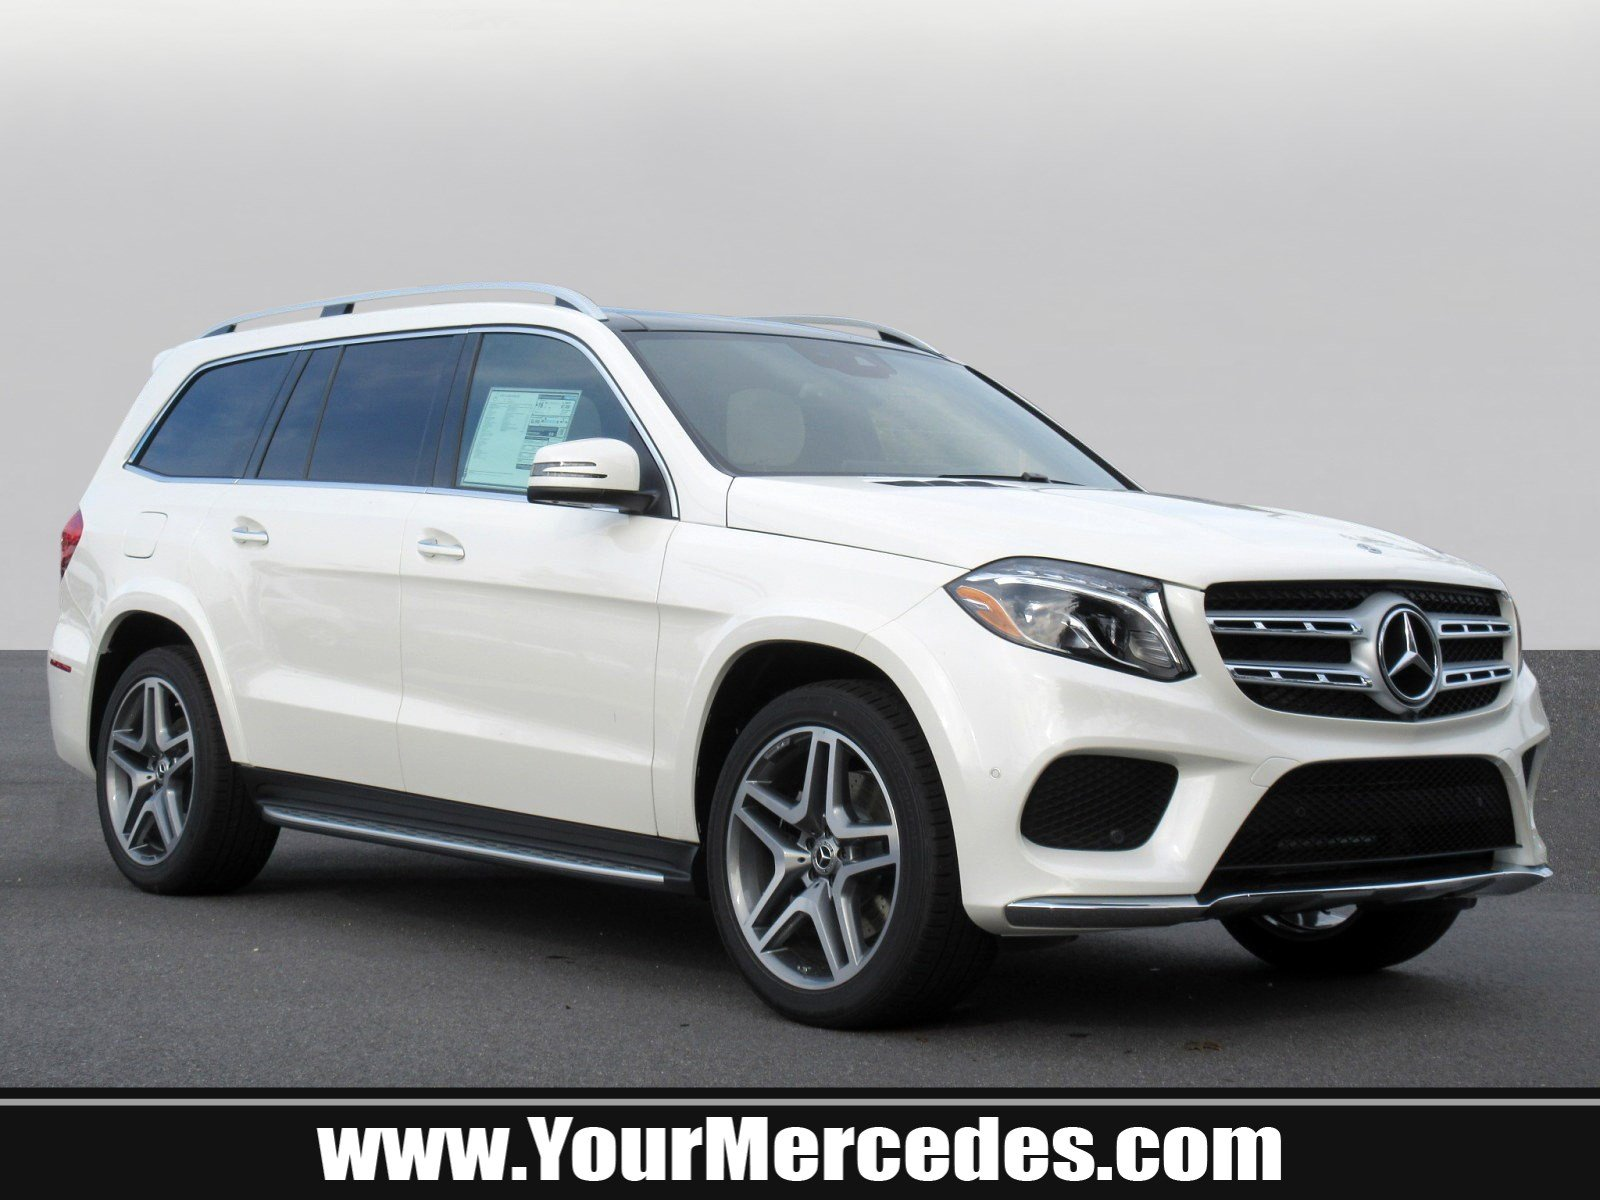 New 2019 Mercedes Benz GLS GLS 550 SUV in Egg Harbor Township